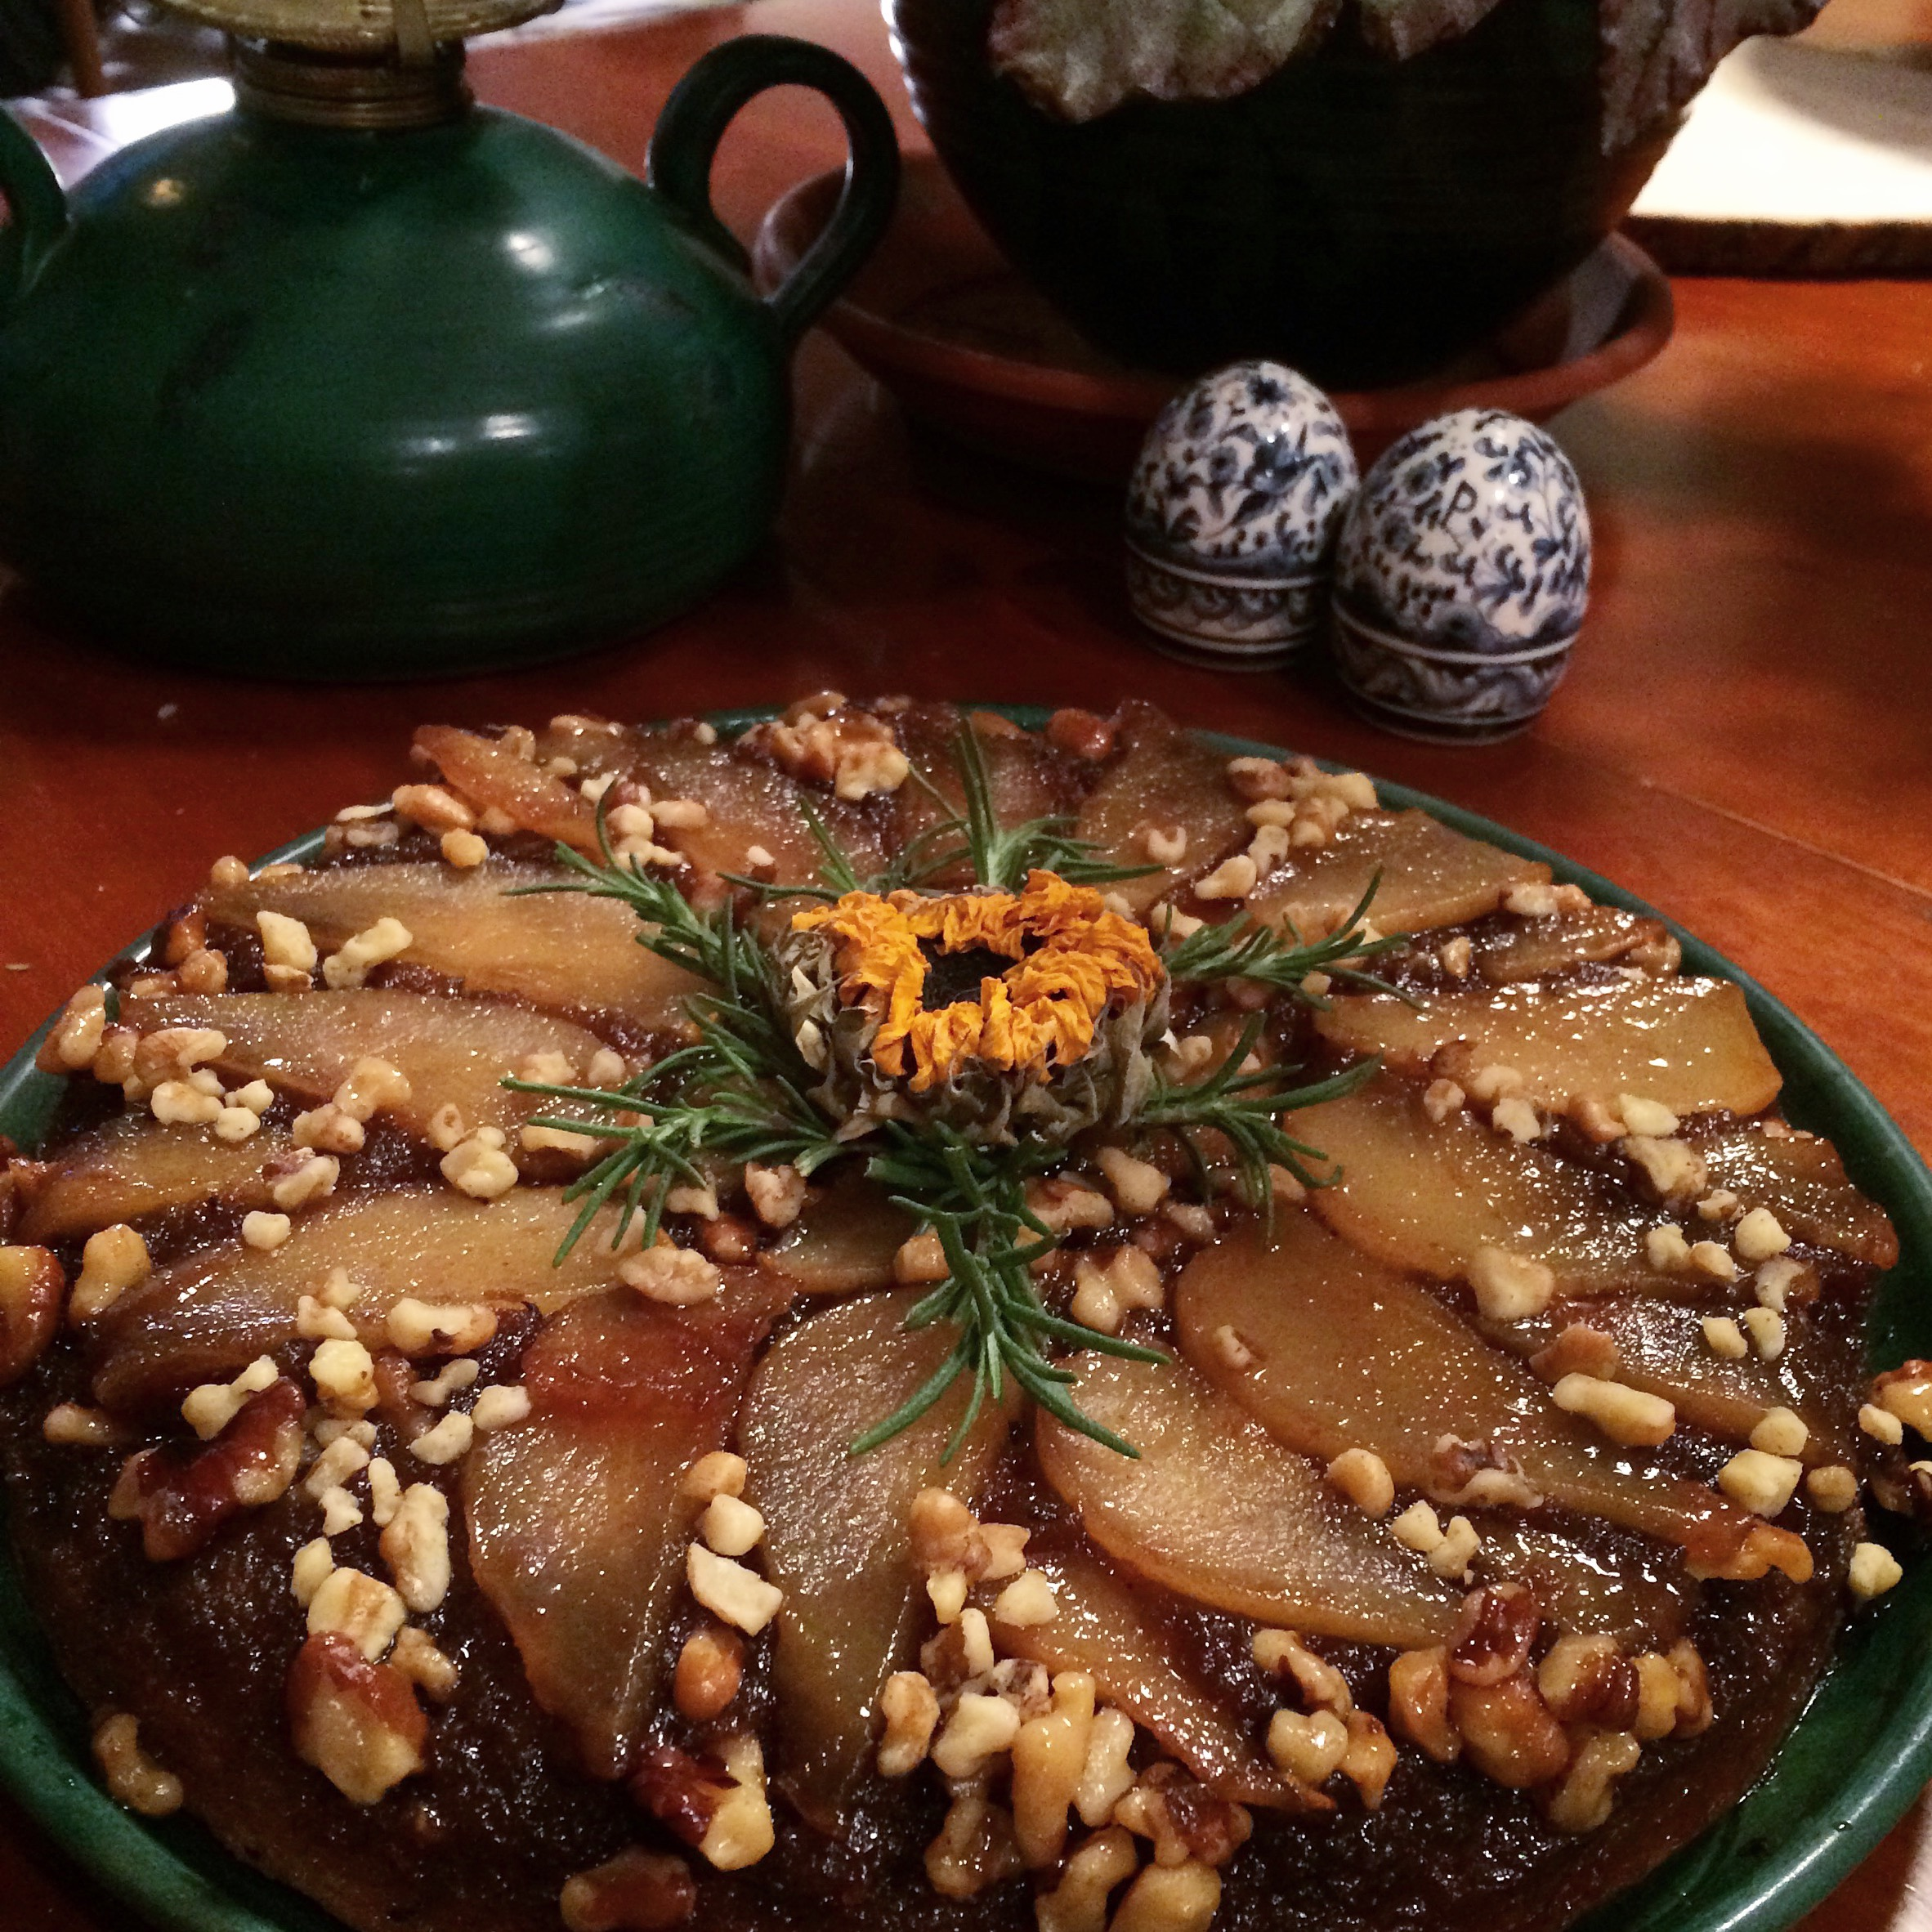 Pear Rosemary Upside Down Cake